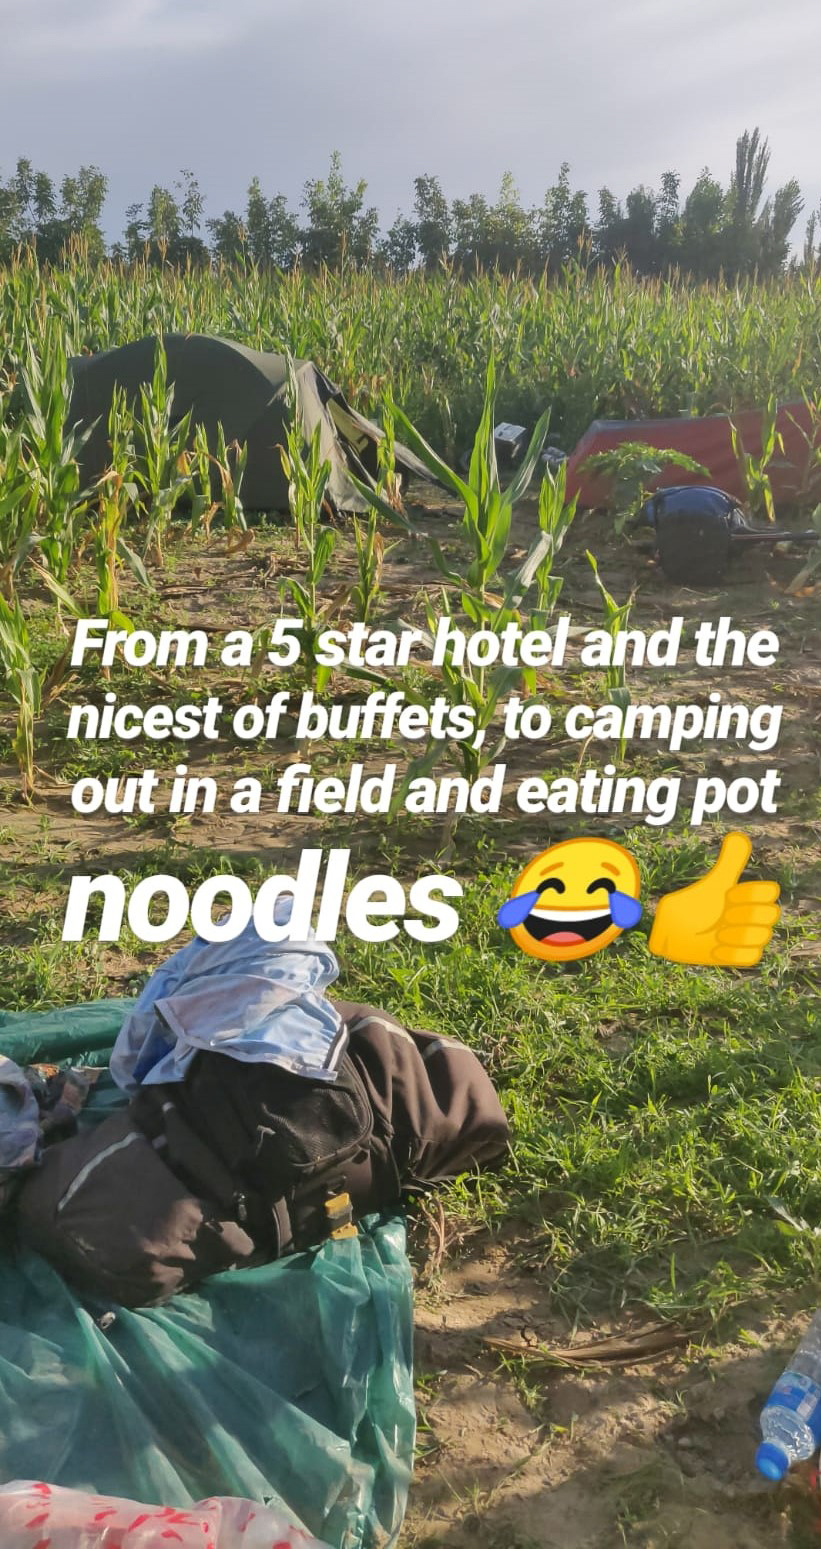 Camping in a Maize field